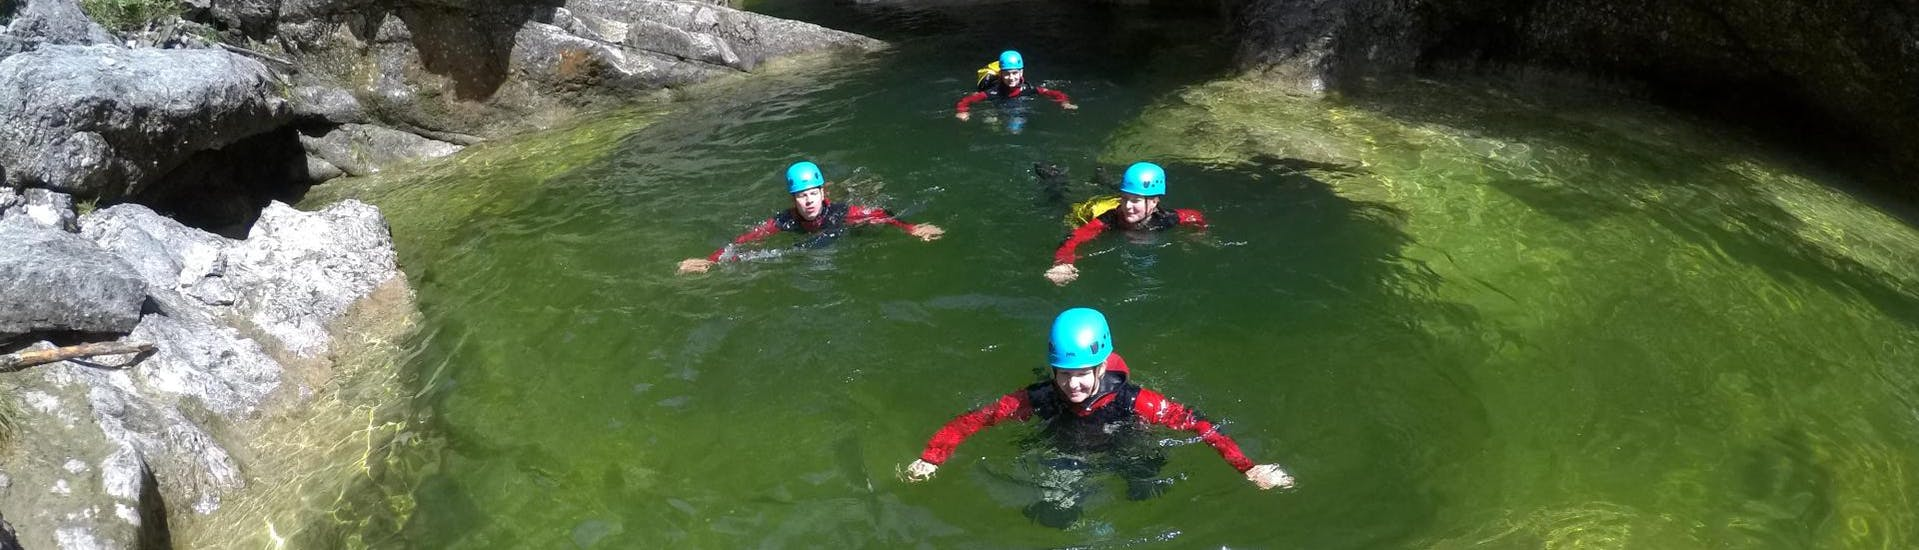 A group of people is enjoying the Canyoning for Beginners - Almbachklamm organised by professional canyoning guides from Bergführer Salzburg.